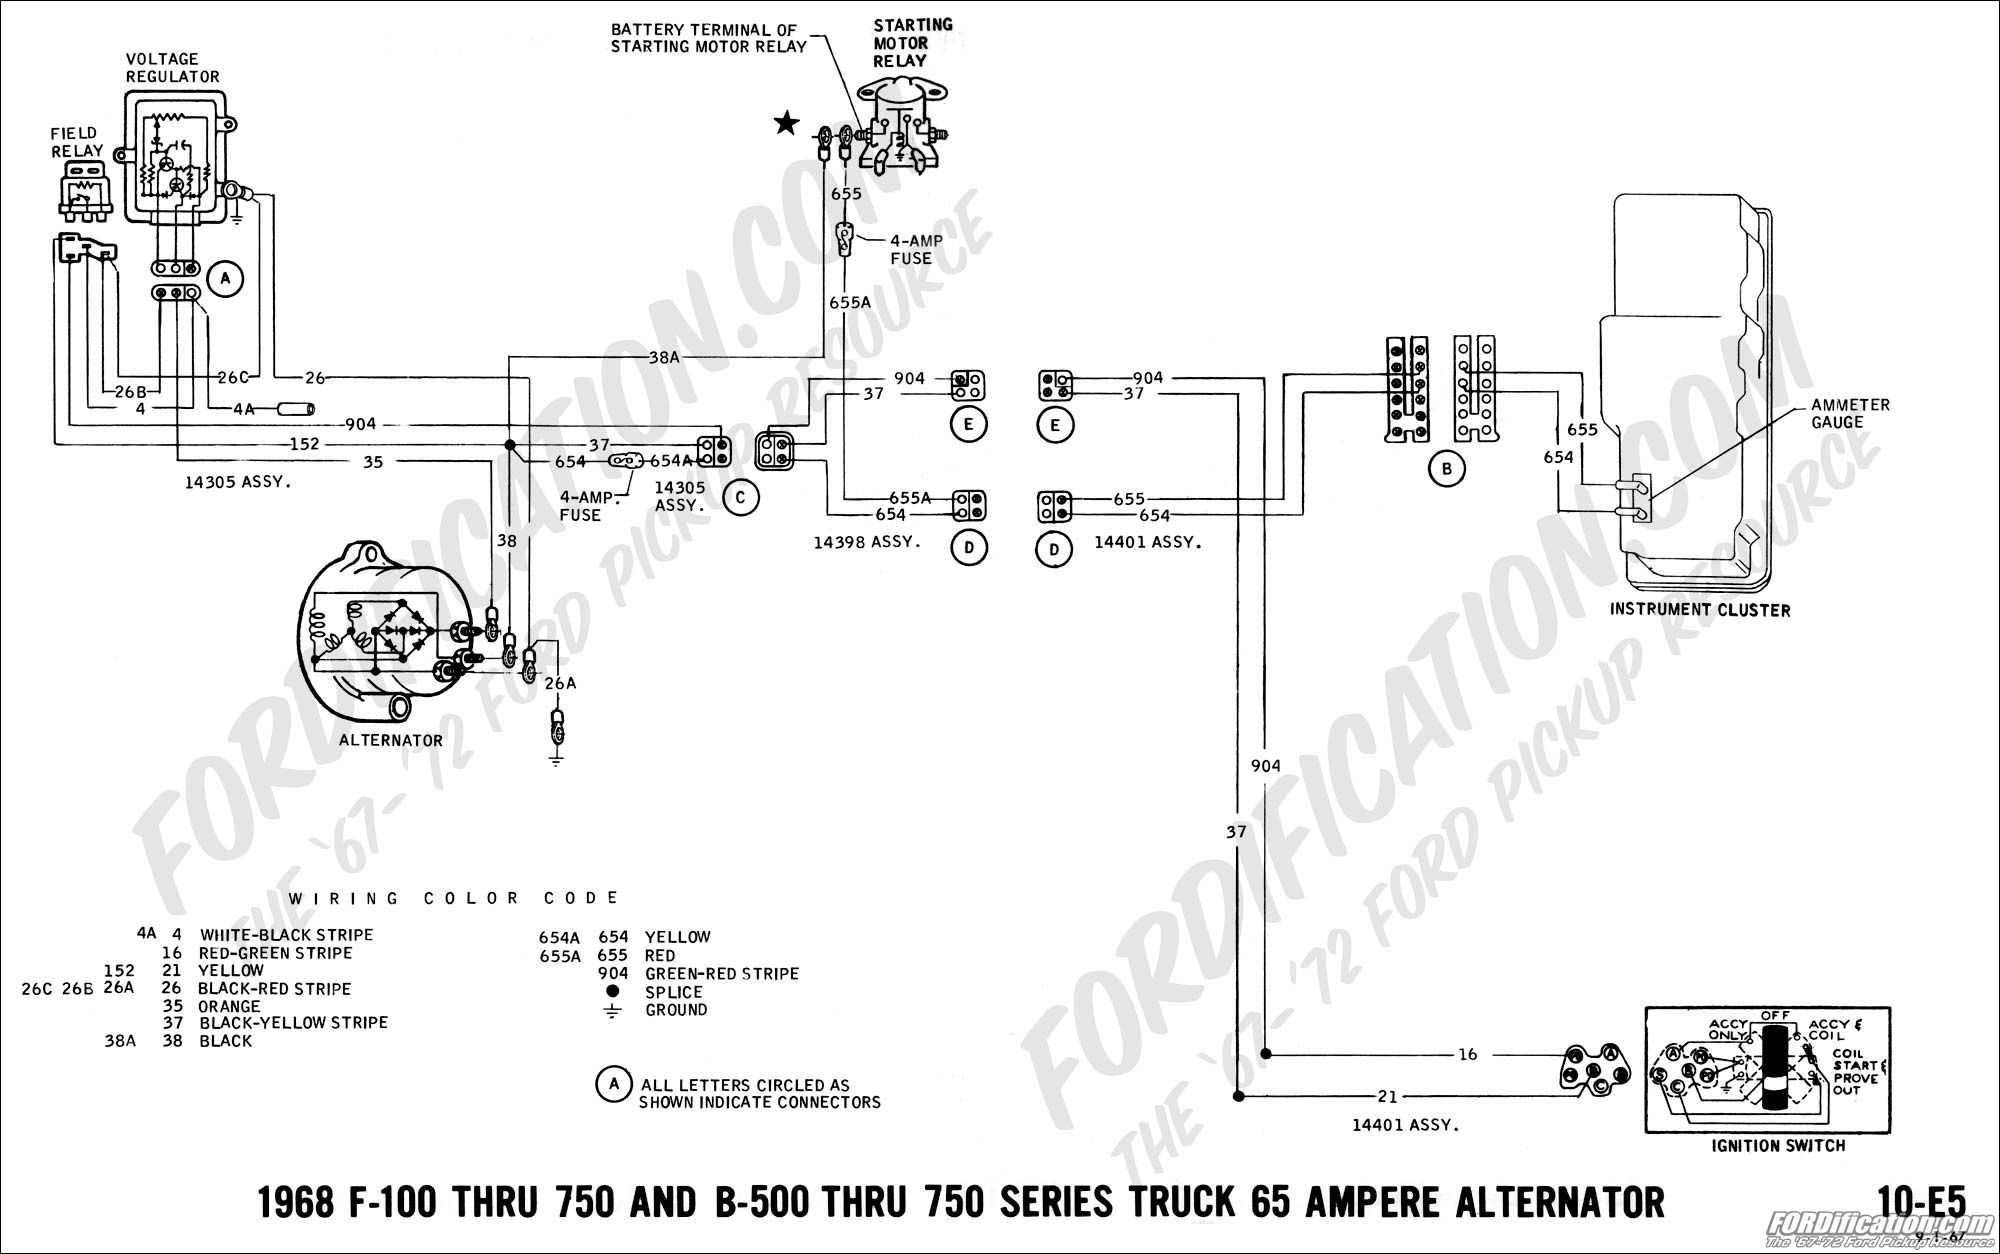 1979 ford truck voltage regulator wiring diagram touch wiring diagrams 59 Ford Truck Interior 1968 ford alternator wiring diagram free picture data wiring diagram cub cadet voltage regulator wiring diagram 1979 ford truck voltage regulator wiring